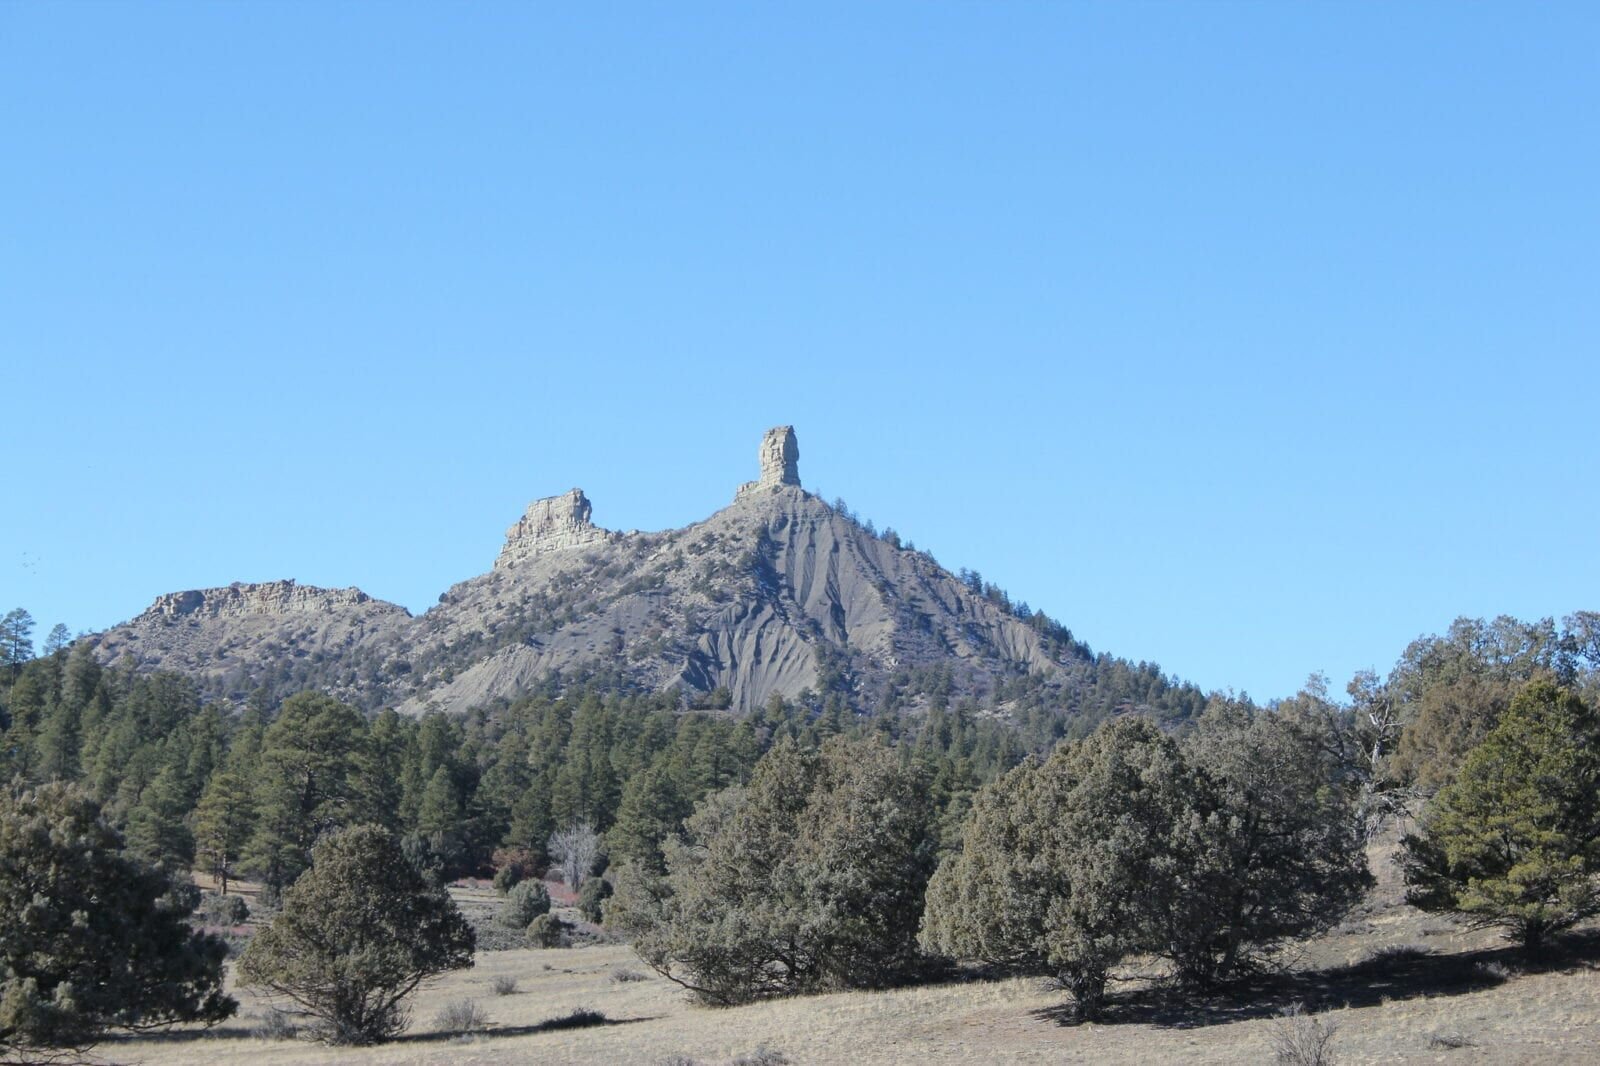 image of Chimney Rock National Monument